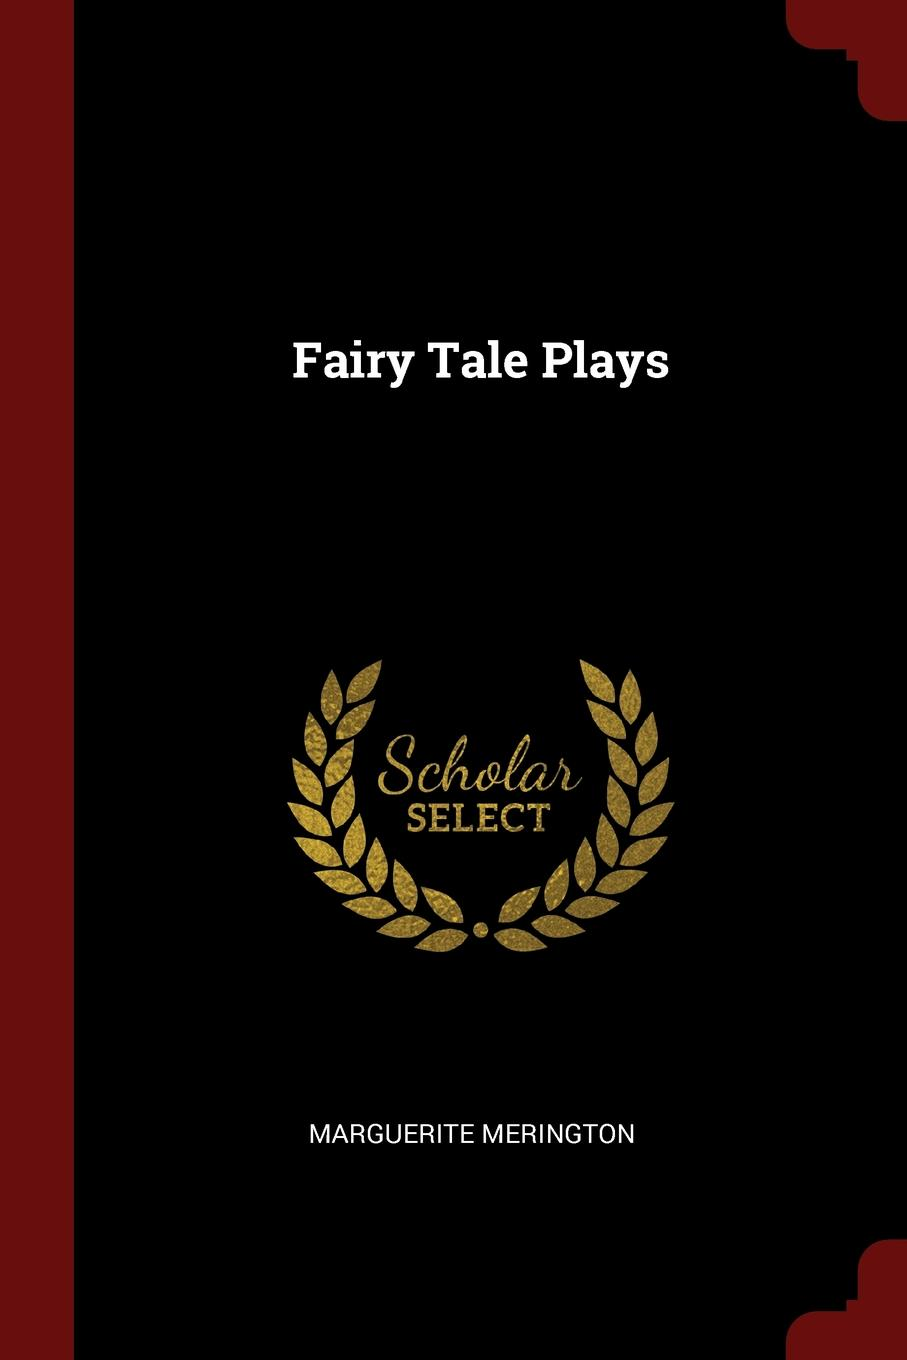 Marguerite Merington Fairy Tale Plays